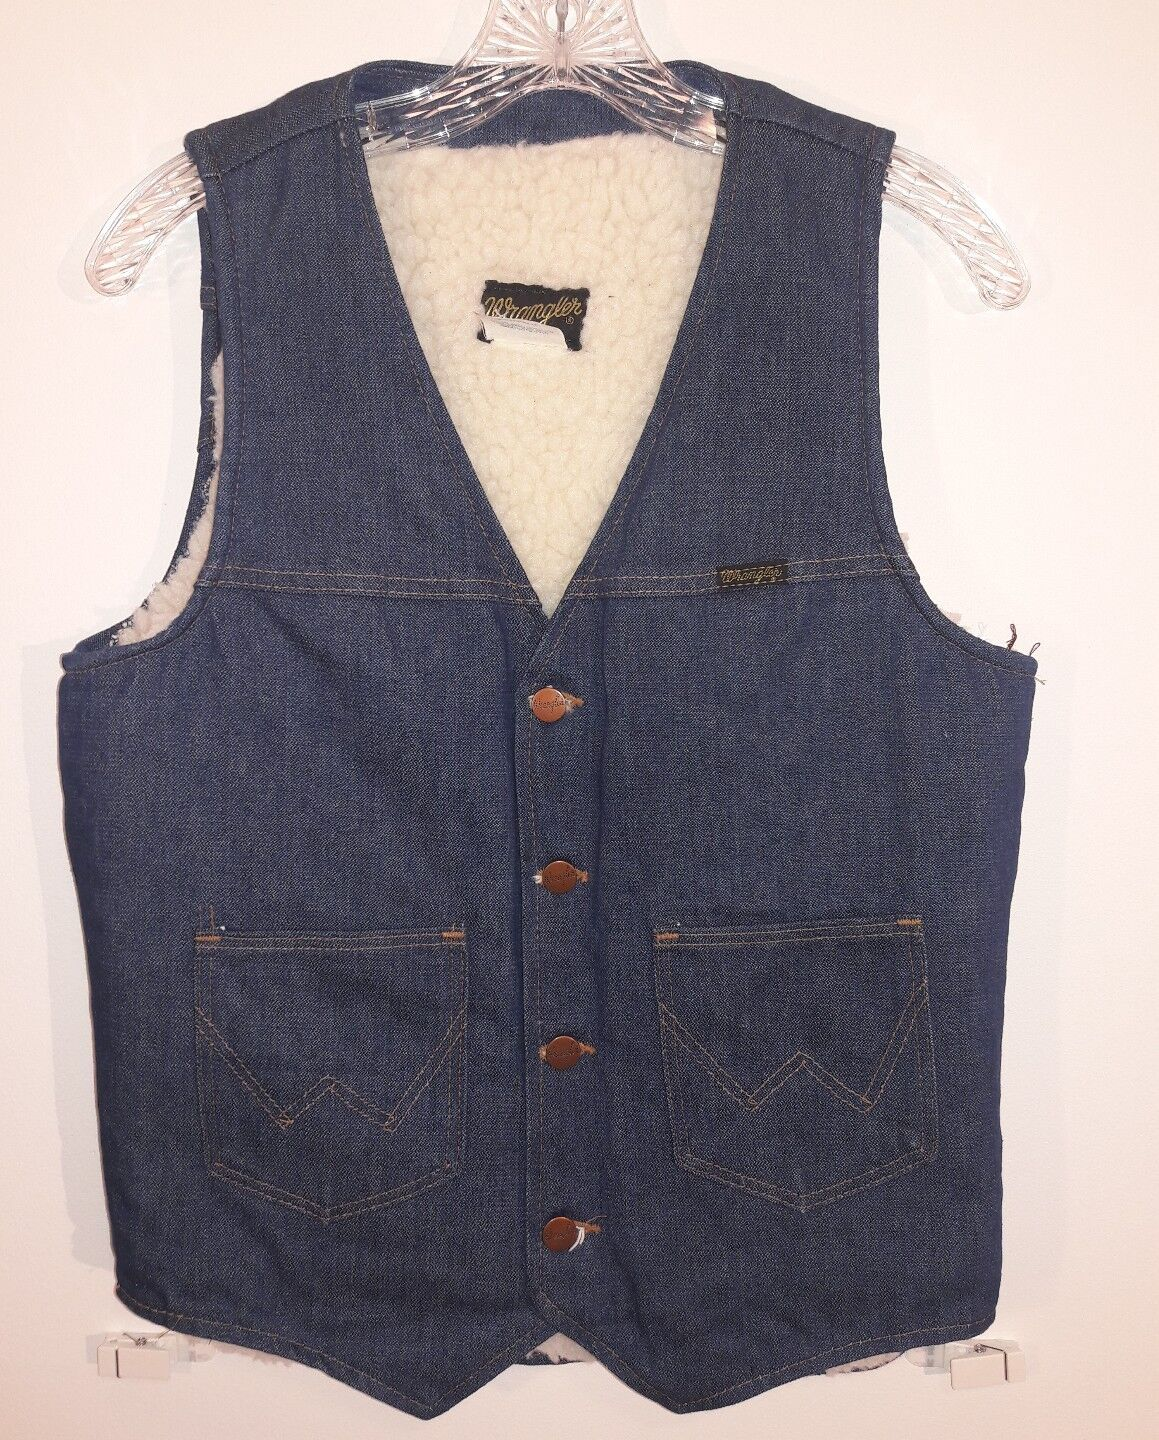 Vintage Wrangler NO FAULT DENIM Sherpa Denim Jean Vest Mens Small EUC